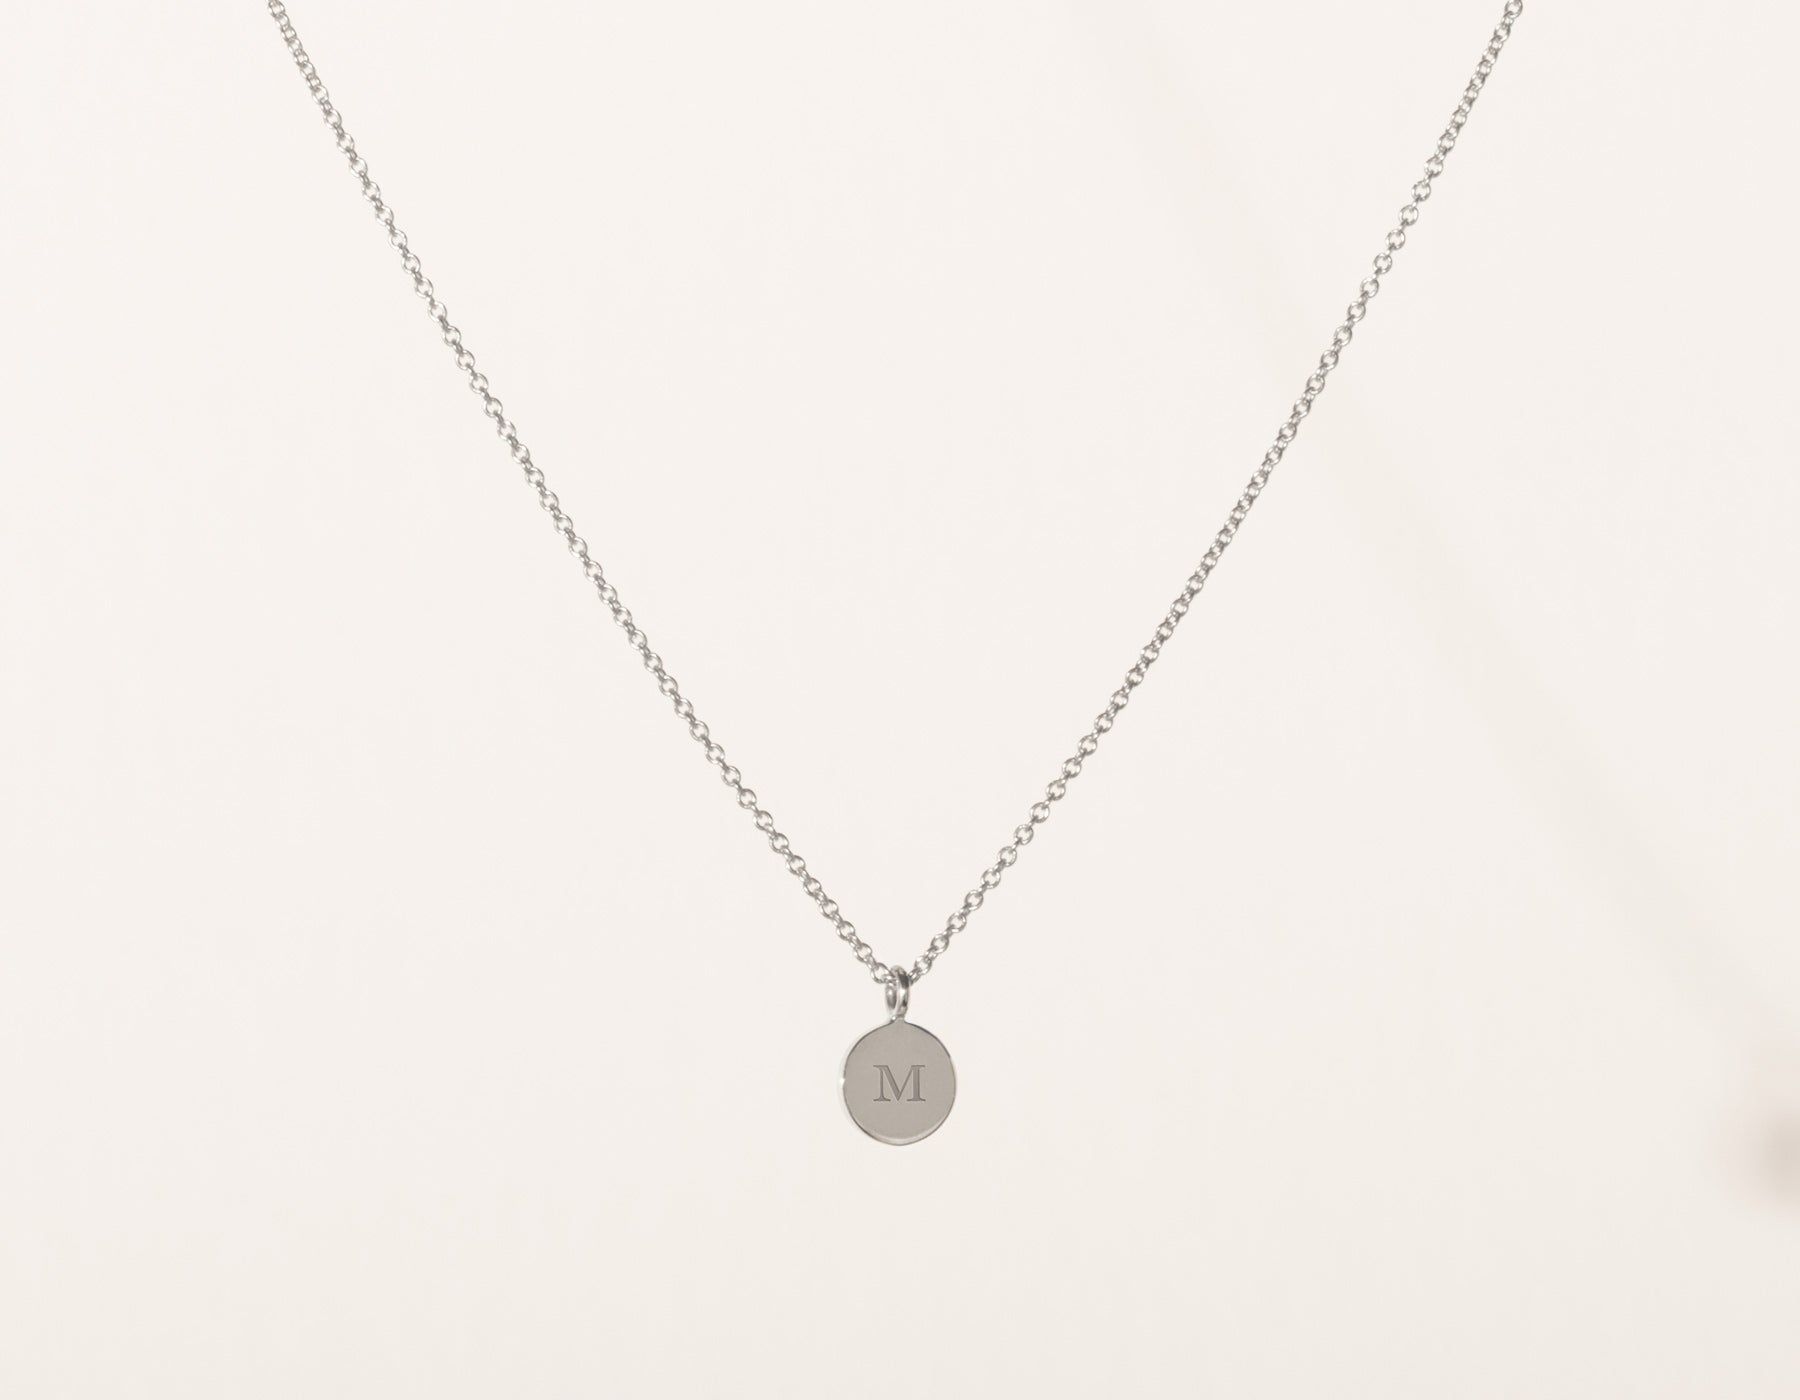 auree with disc on engraved initial a jewellery white necklace pendant gold westbourne chain